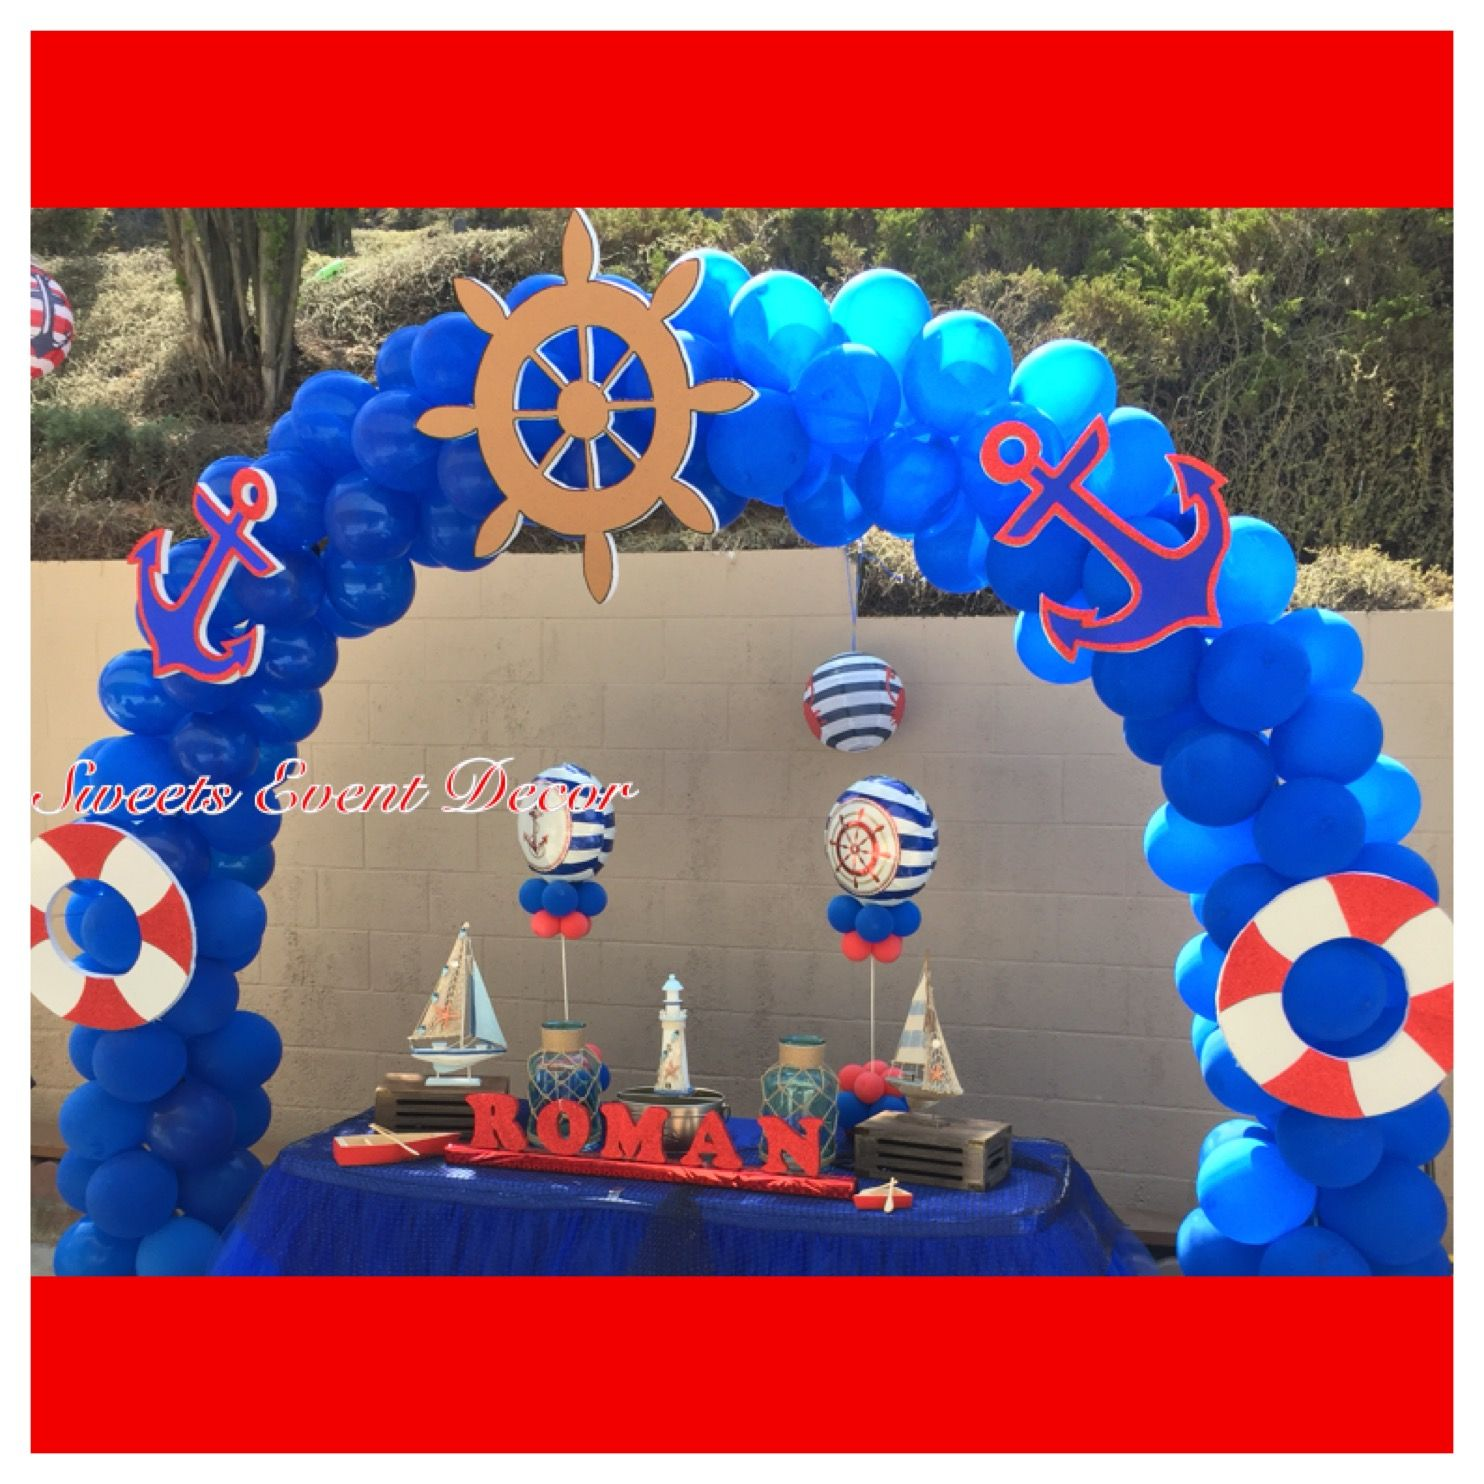 Nautical Event Decor: Nautical Theme Balloon Decoration By: Sweets Event Decor